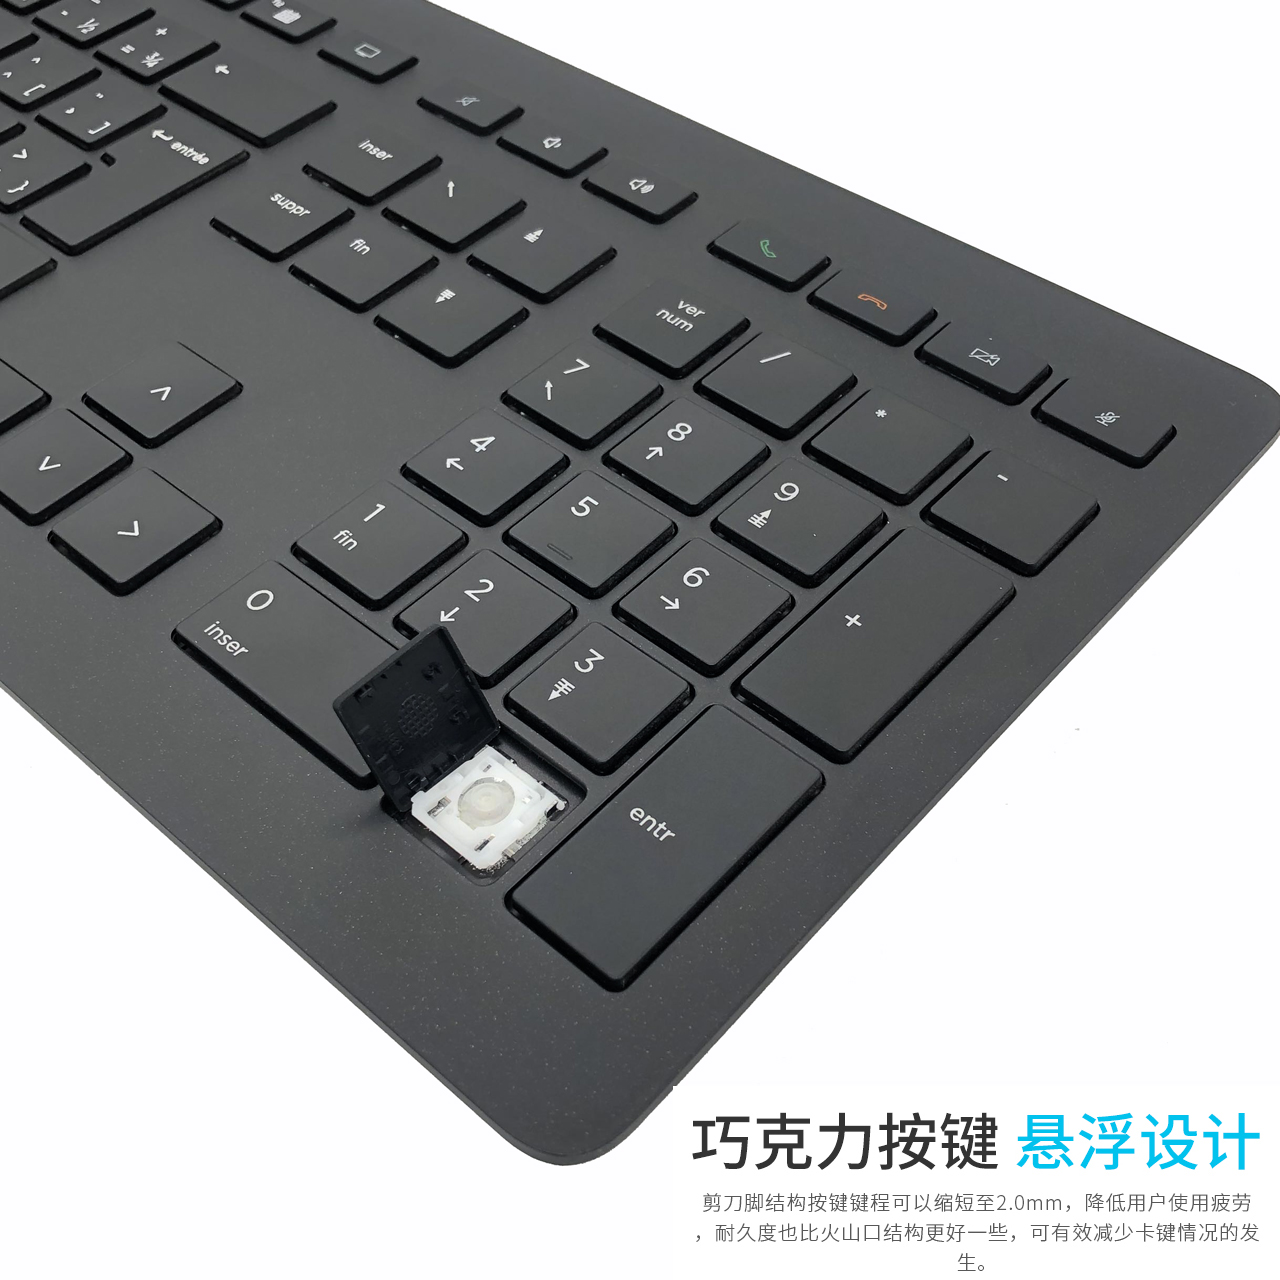 新到货HSA-S002K ASSY HP USB Collaboration KB 键盘